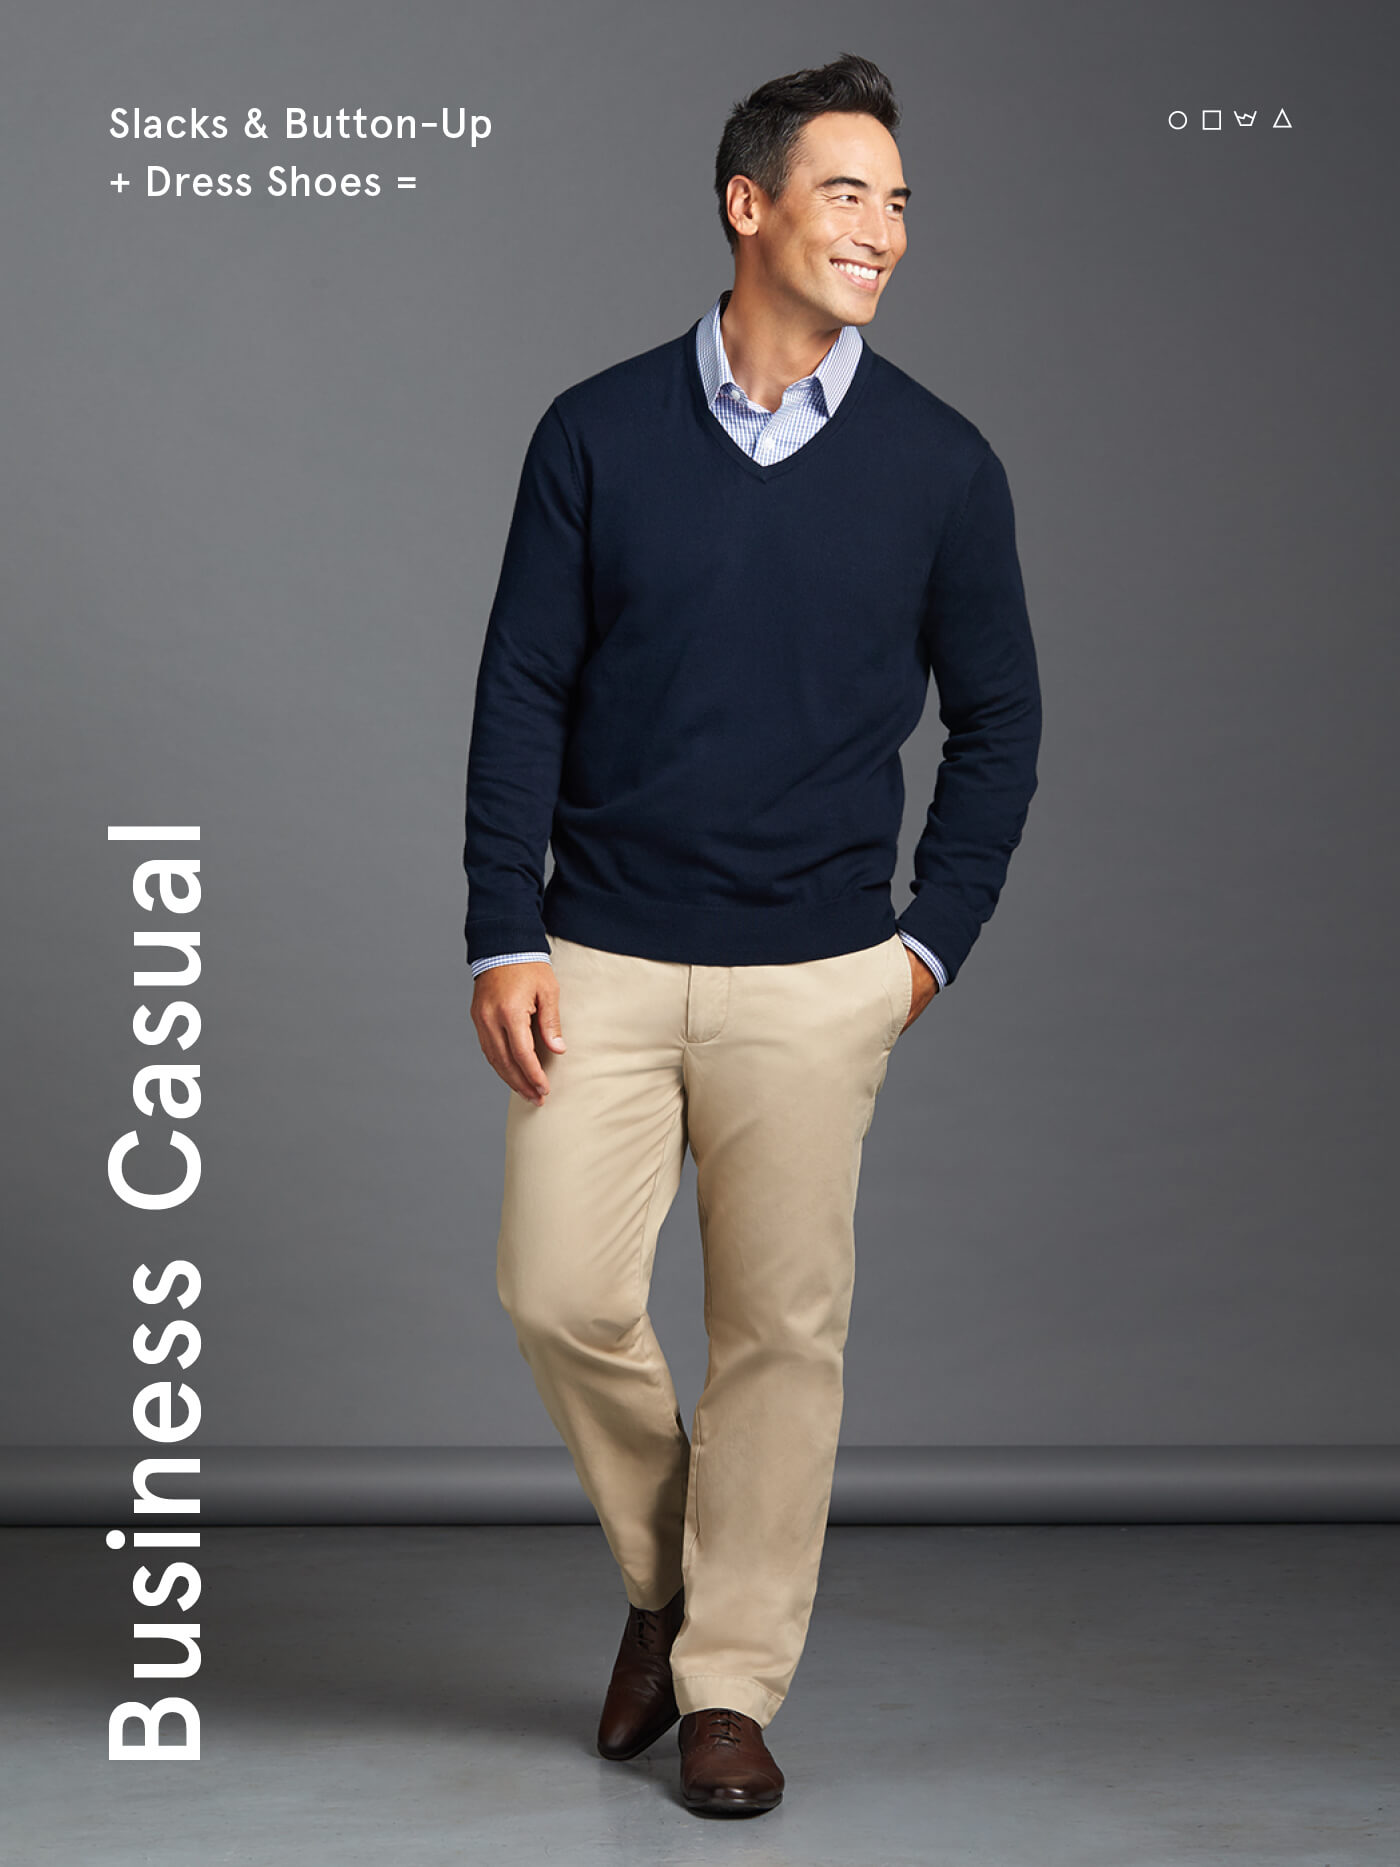 b0b6de72599 what is business casual for men  slack and a button-up with dress shoes